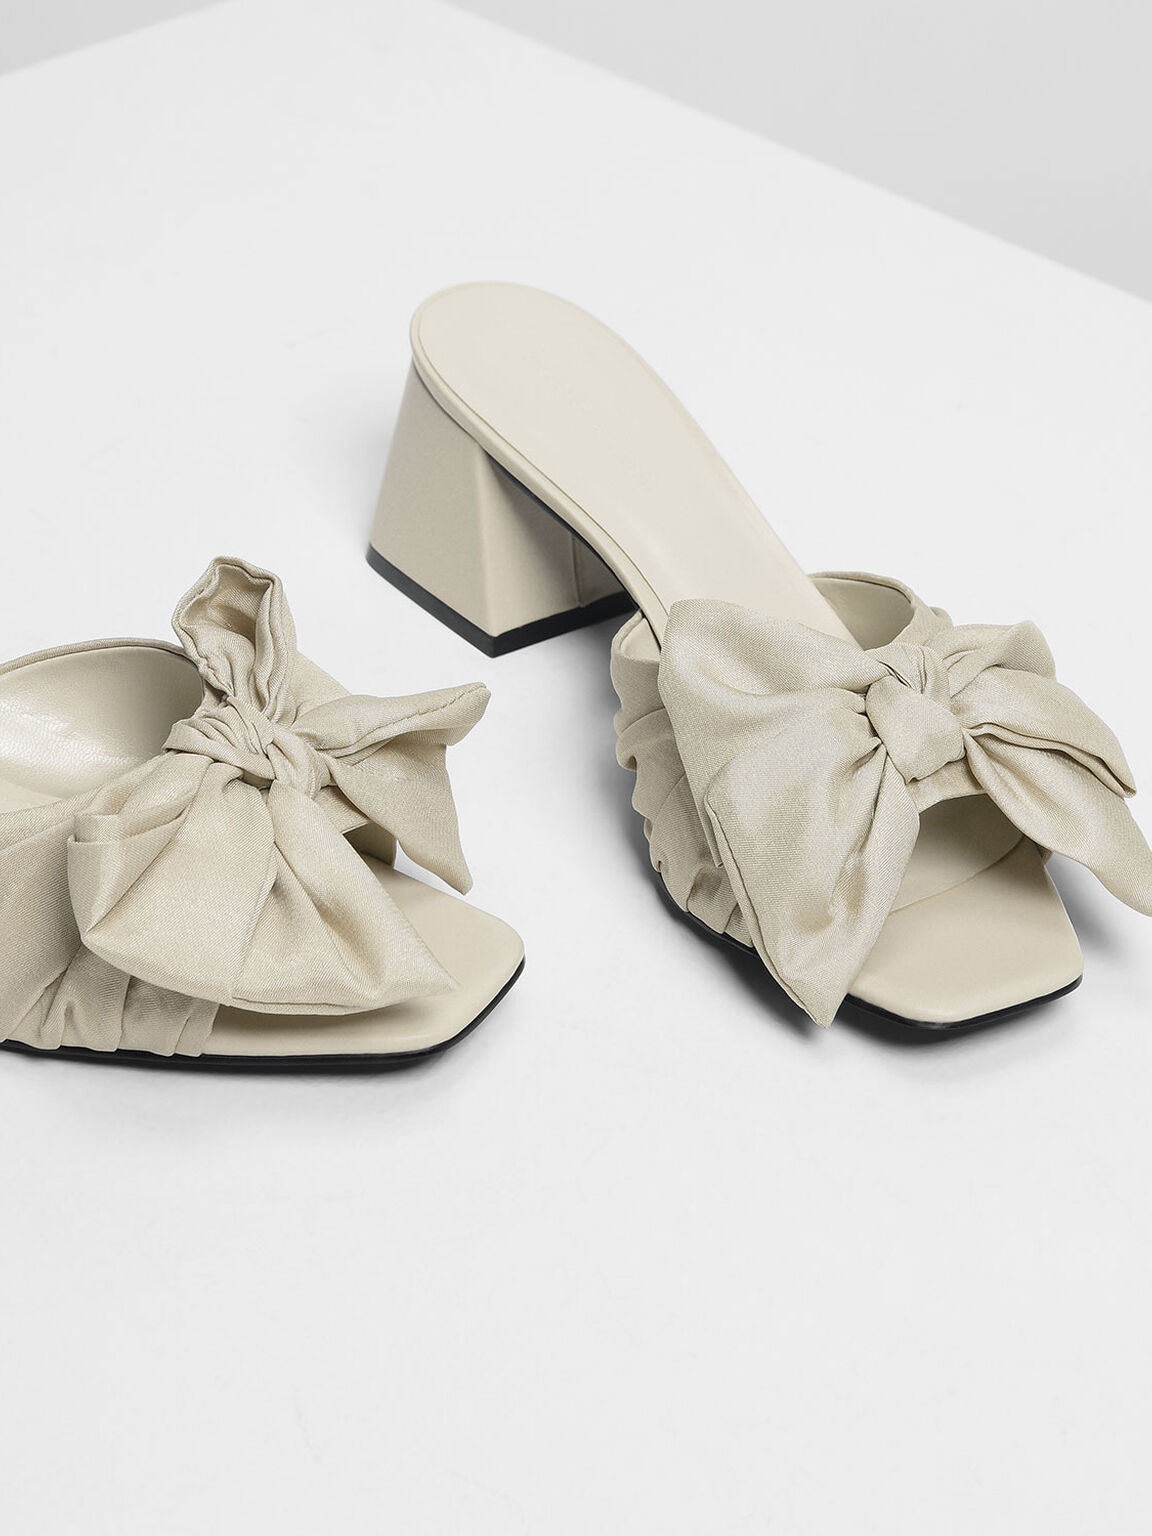 Oversized Knotted Bow Mules, Cream, hi-res